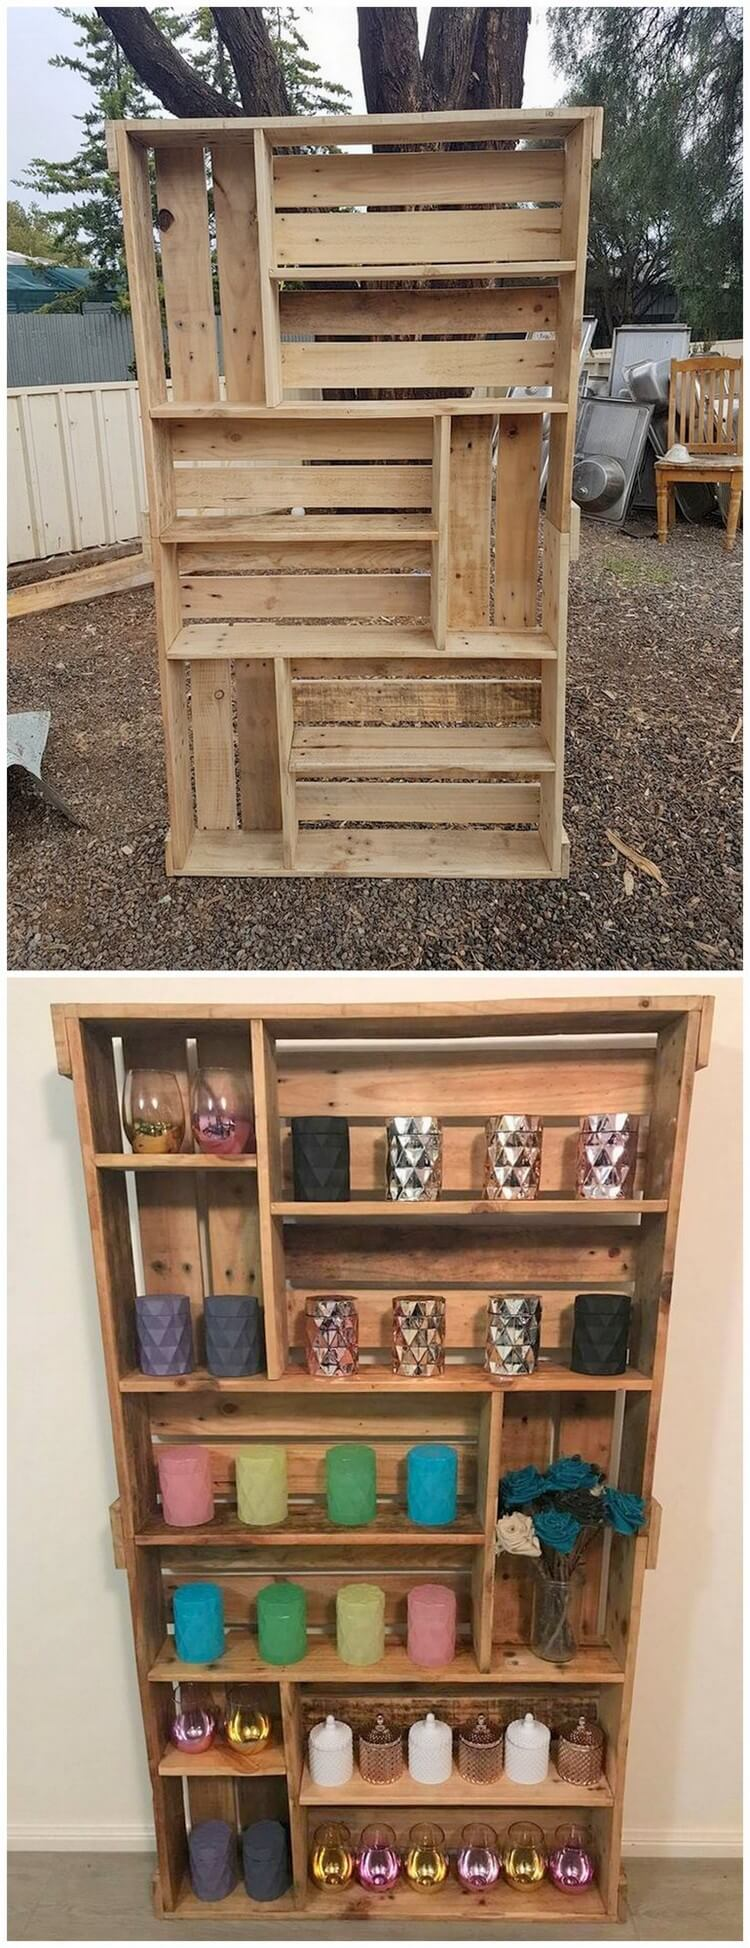 Pallet Shelving Unit